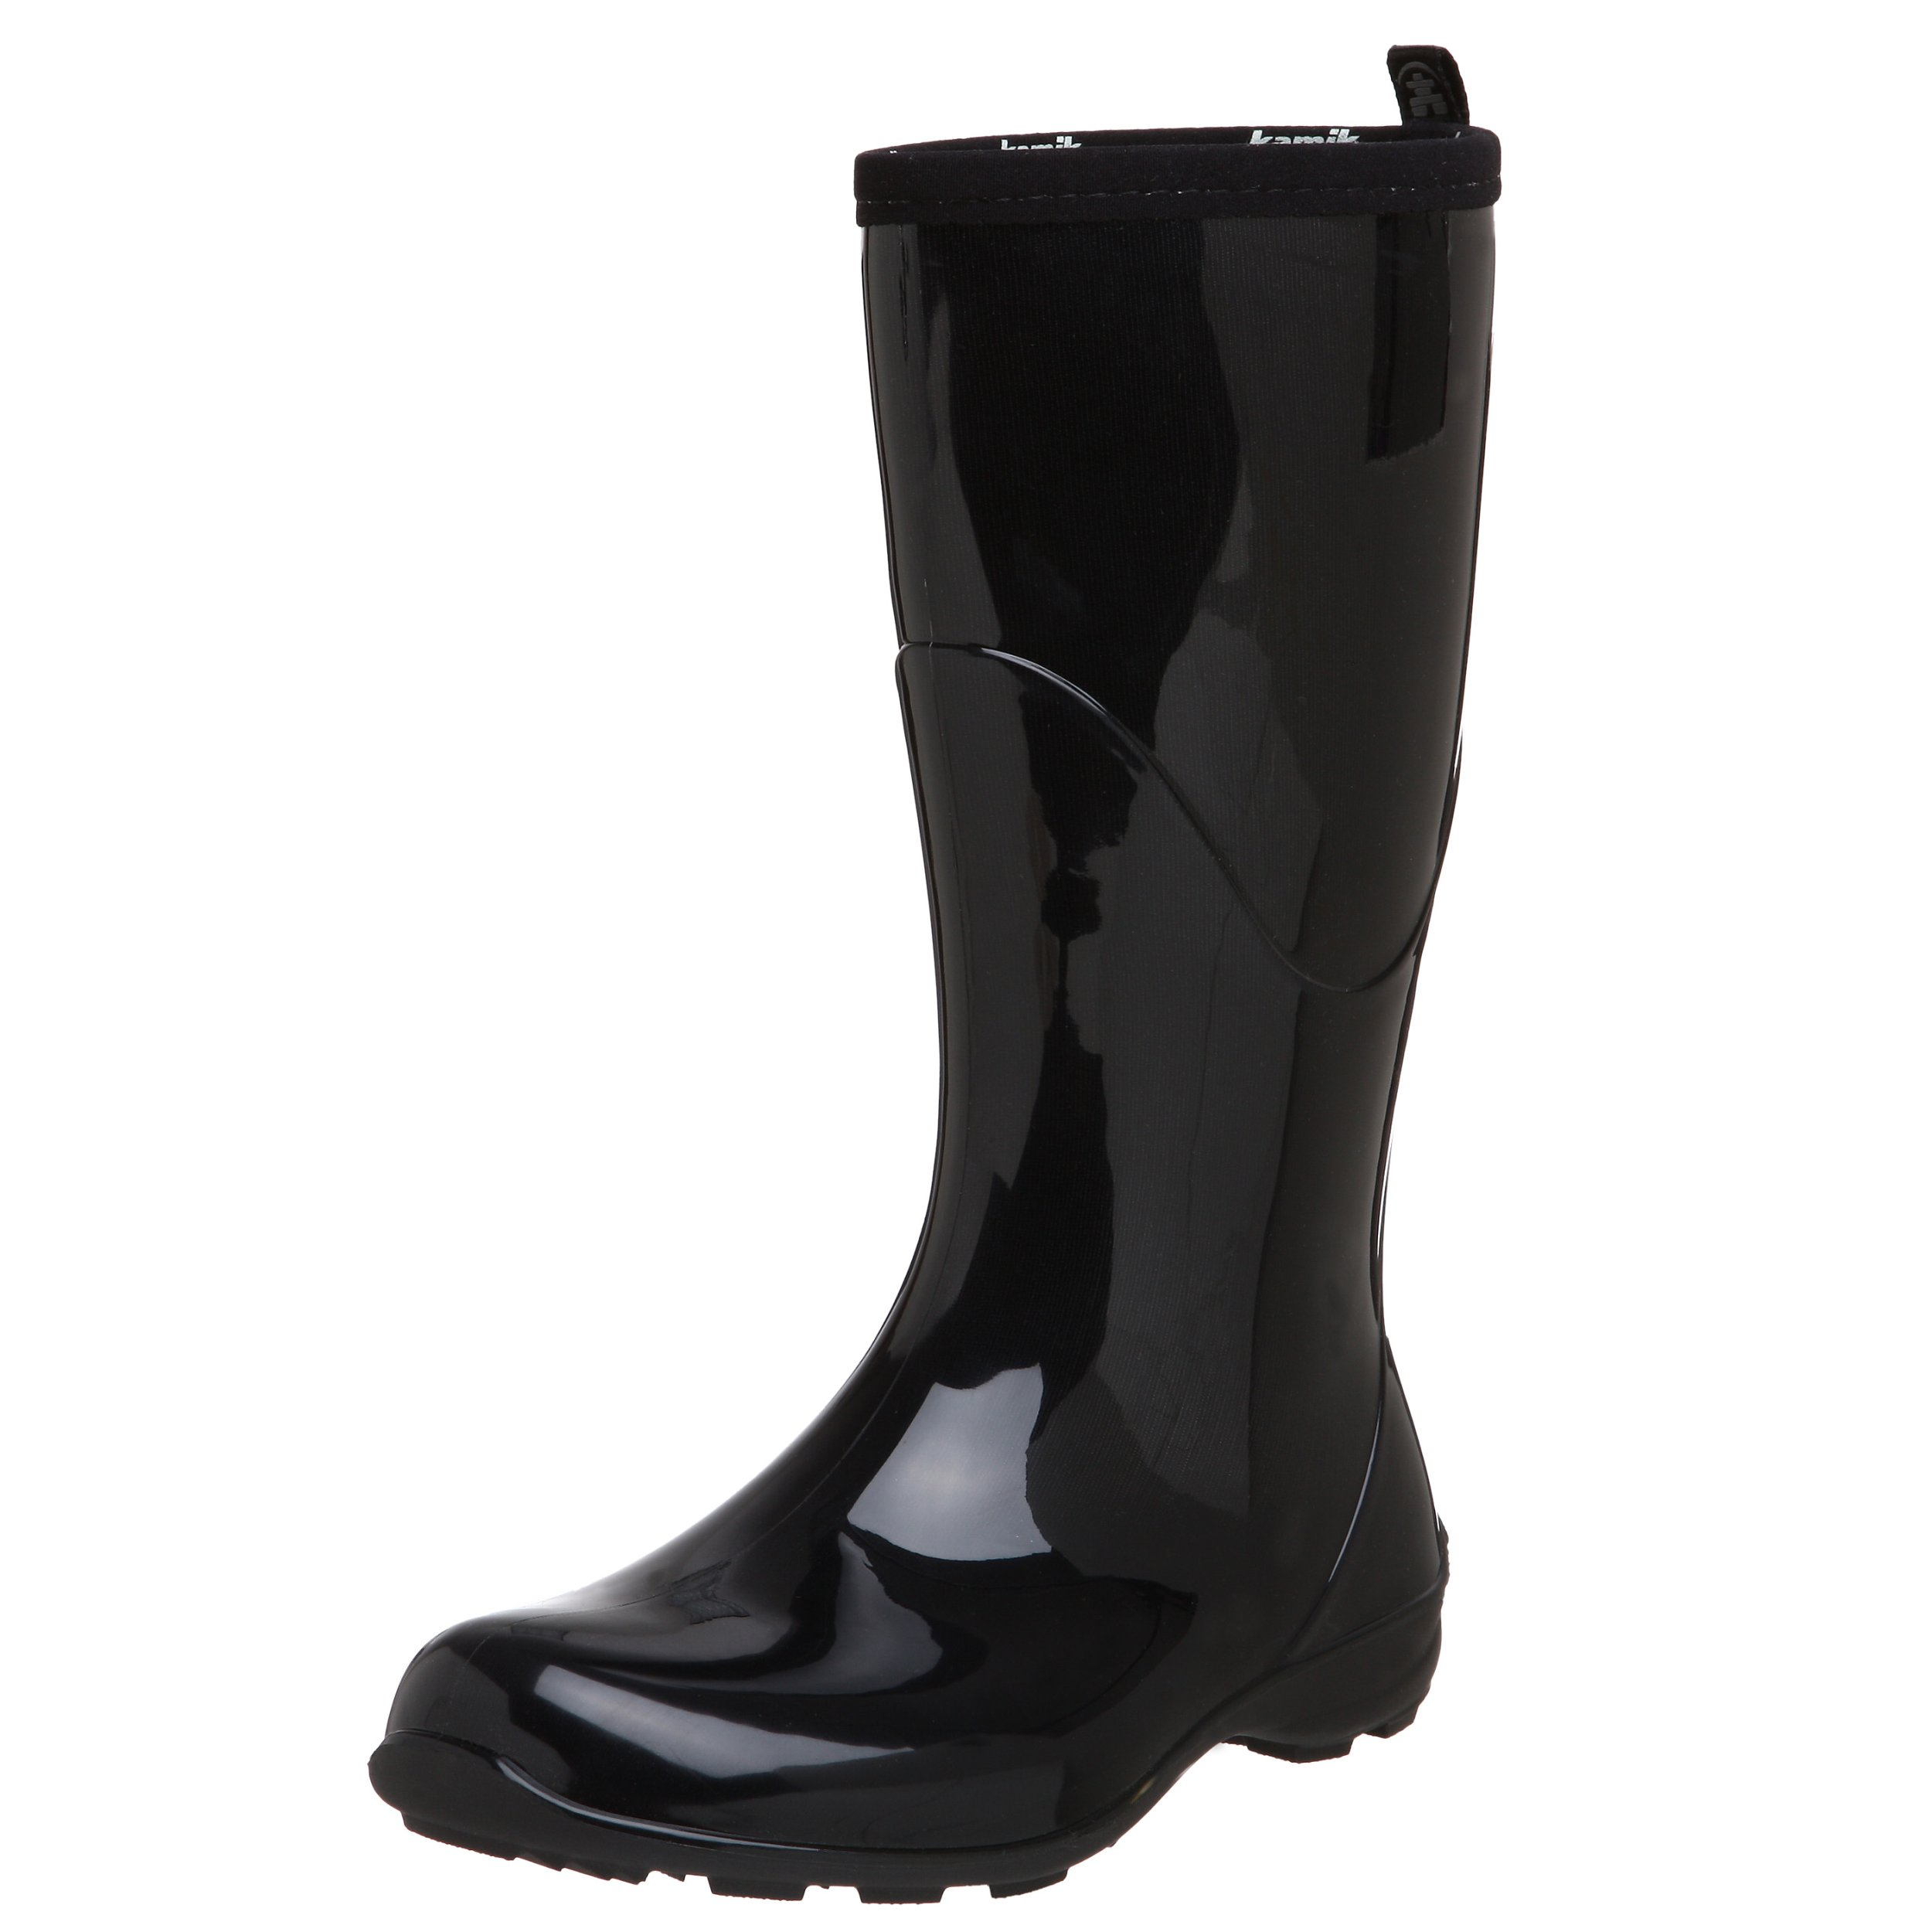 Kamik Women's Heidi Rain Boot,Black/Noir,8 M US by Kamik